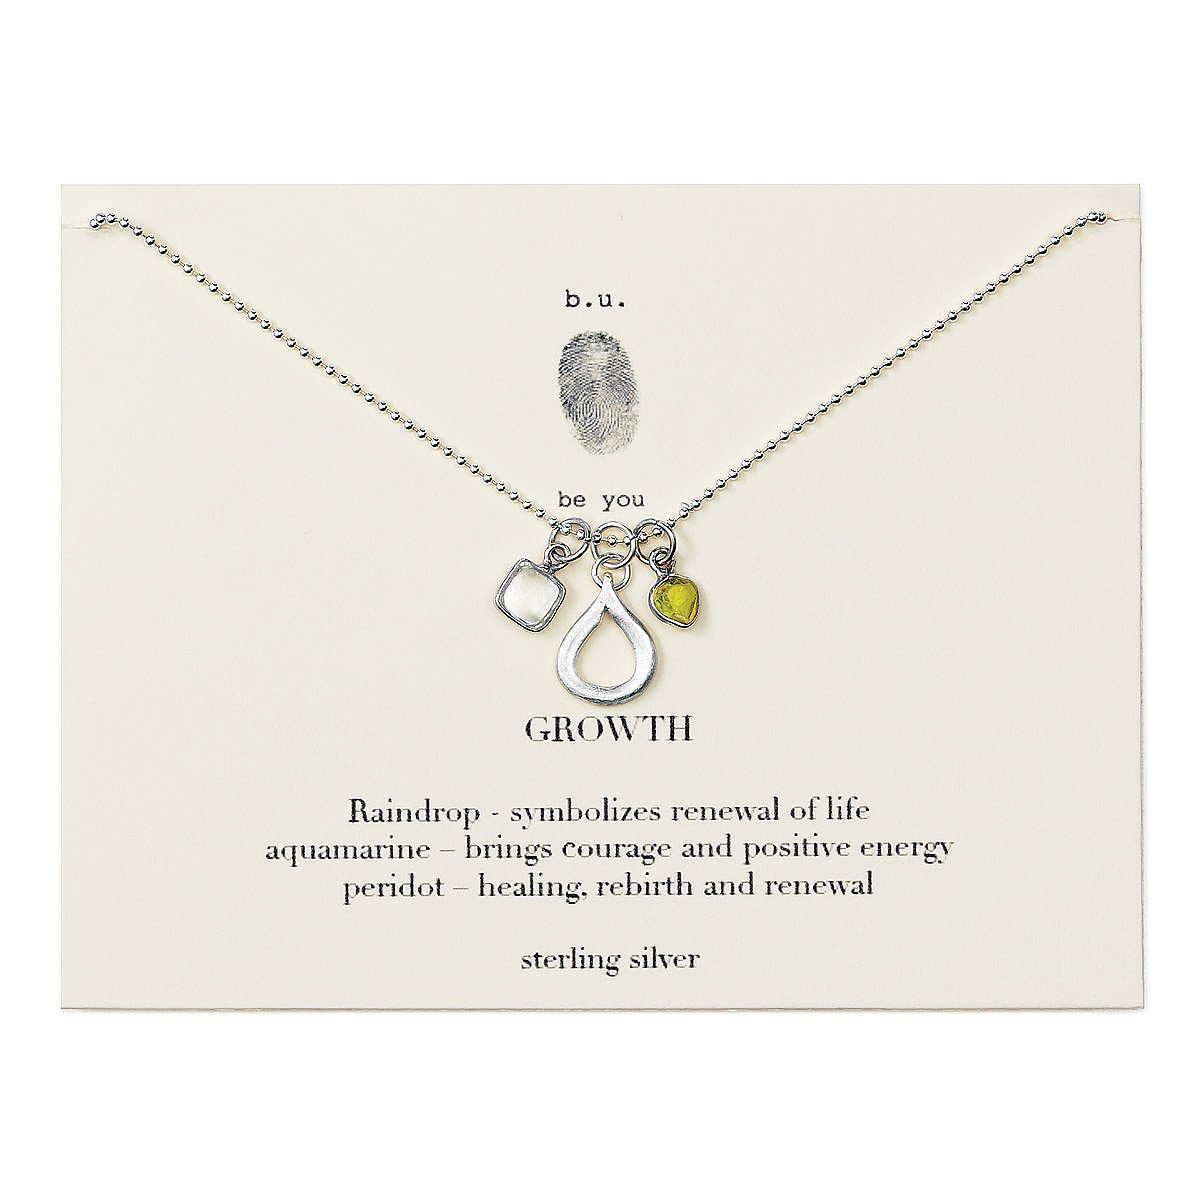 products necklace sovaj brz courage crgec